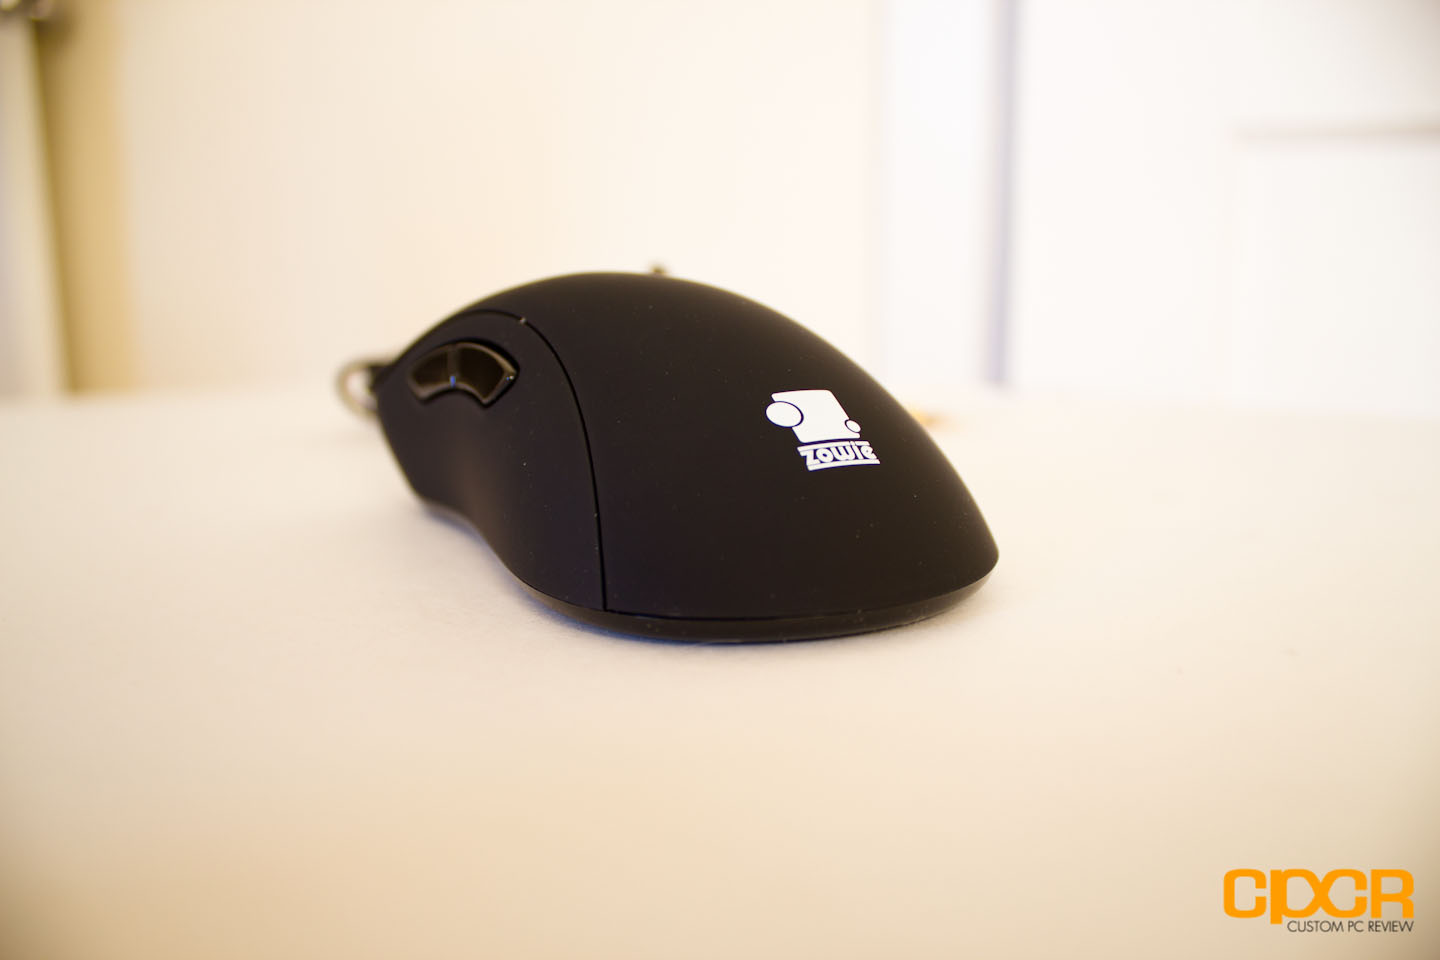 evo mouse The shape of the right side of mouse is well rounded it allows the user's  fingertips to hold/cover the mouse to move smoothly ec series comes in two  sizes to.